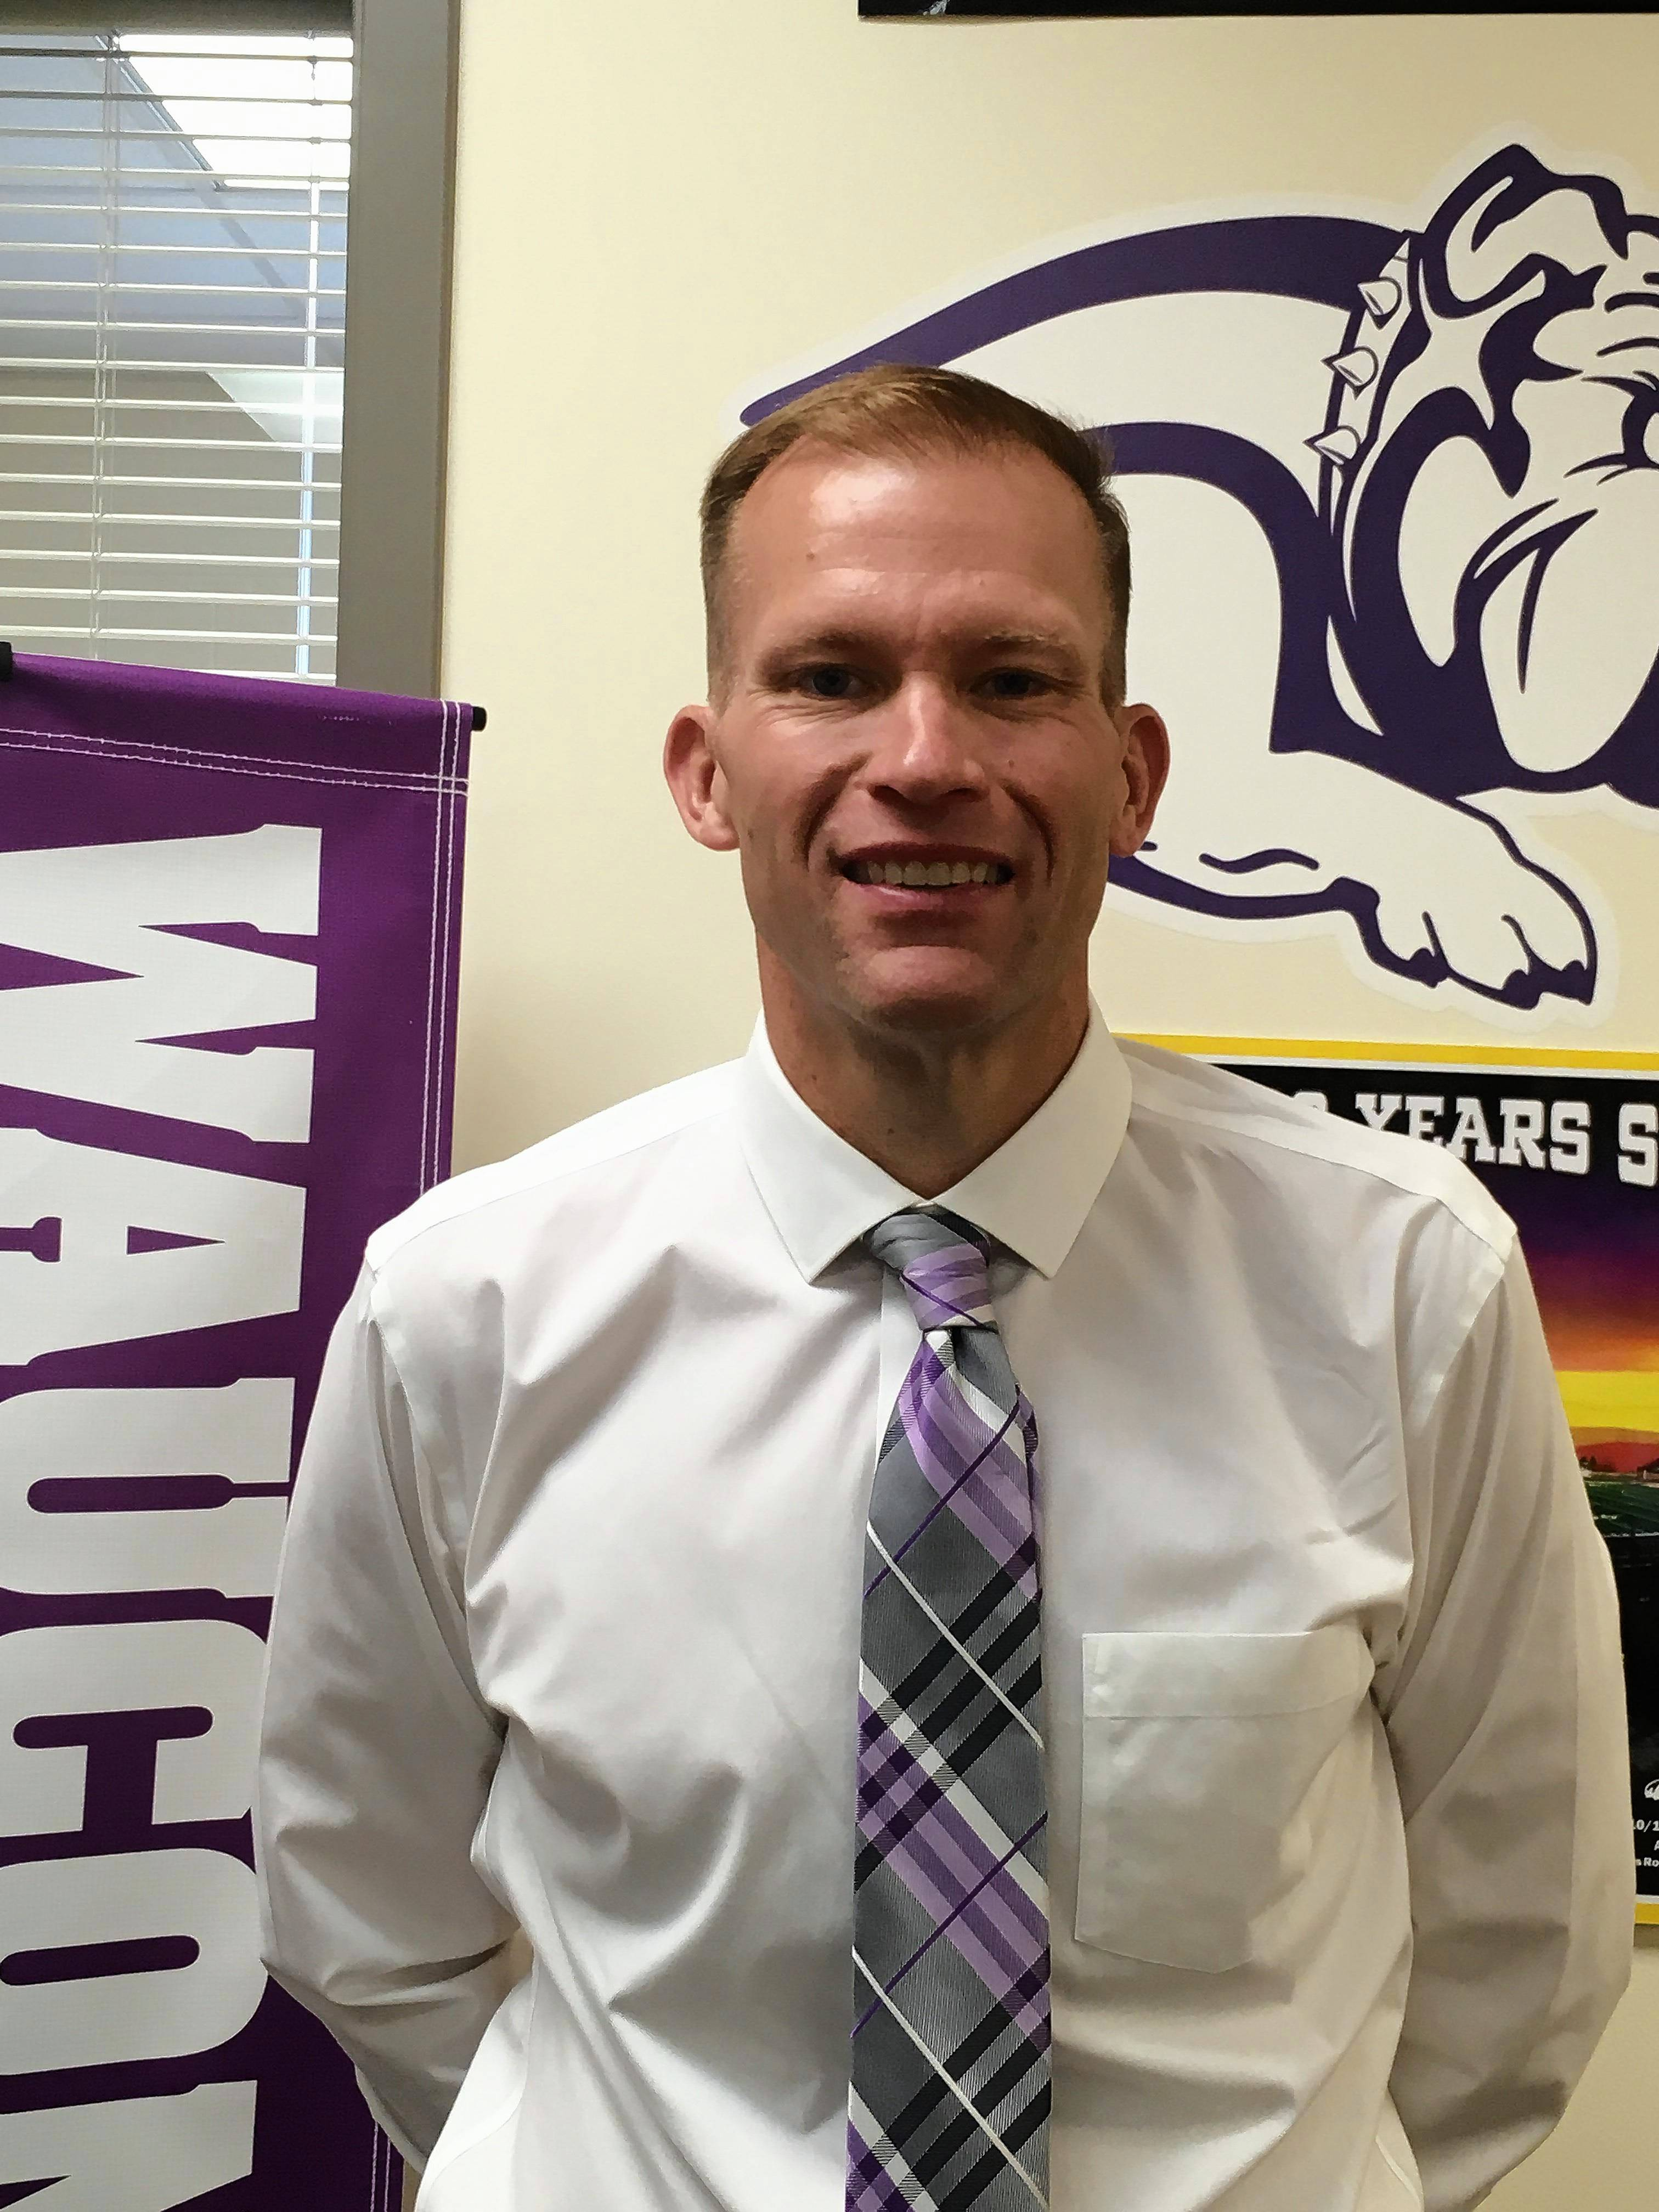 Mark Ribbens has been hired as Waucona High School's new athletic director and will start July 1.